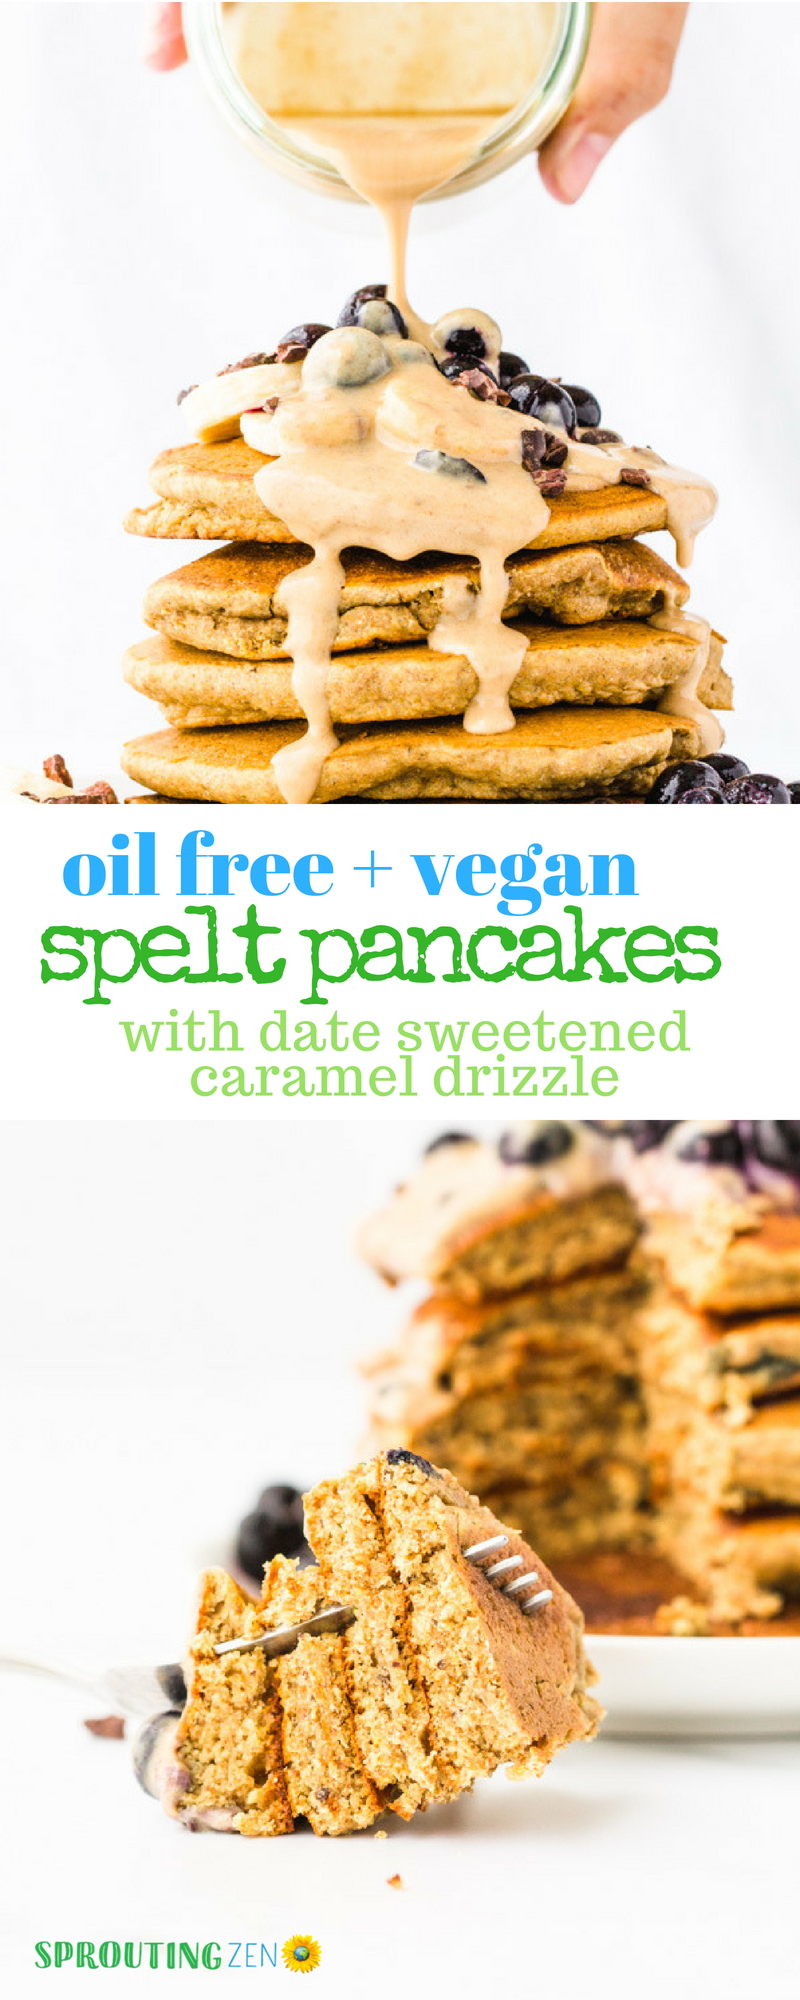 Easy Vegan Spelt Pancake Recipe that is Oil free and Refined sugar free. Topped with a date-sweetened caramel drizzle! So yum. #vegan #plantbased #breakfastrecipes